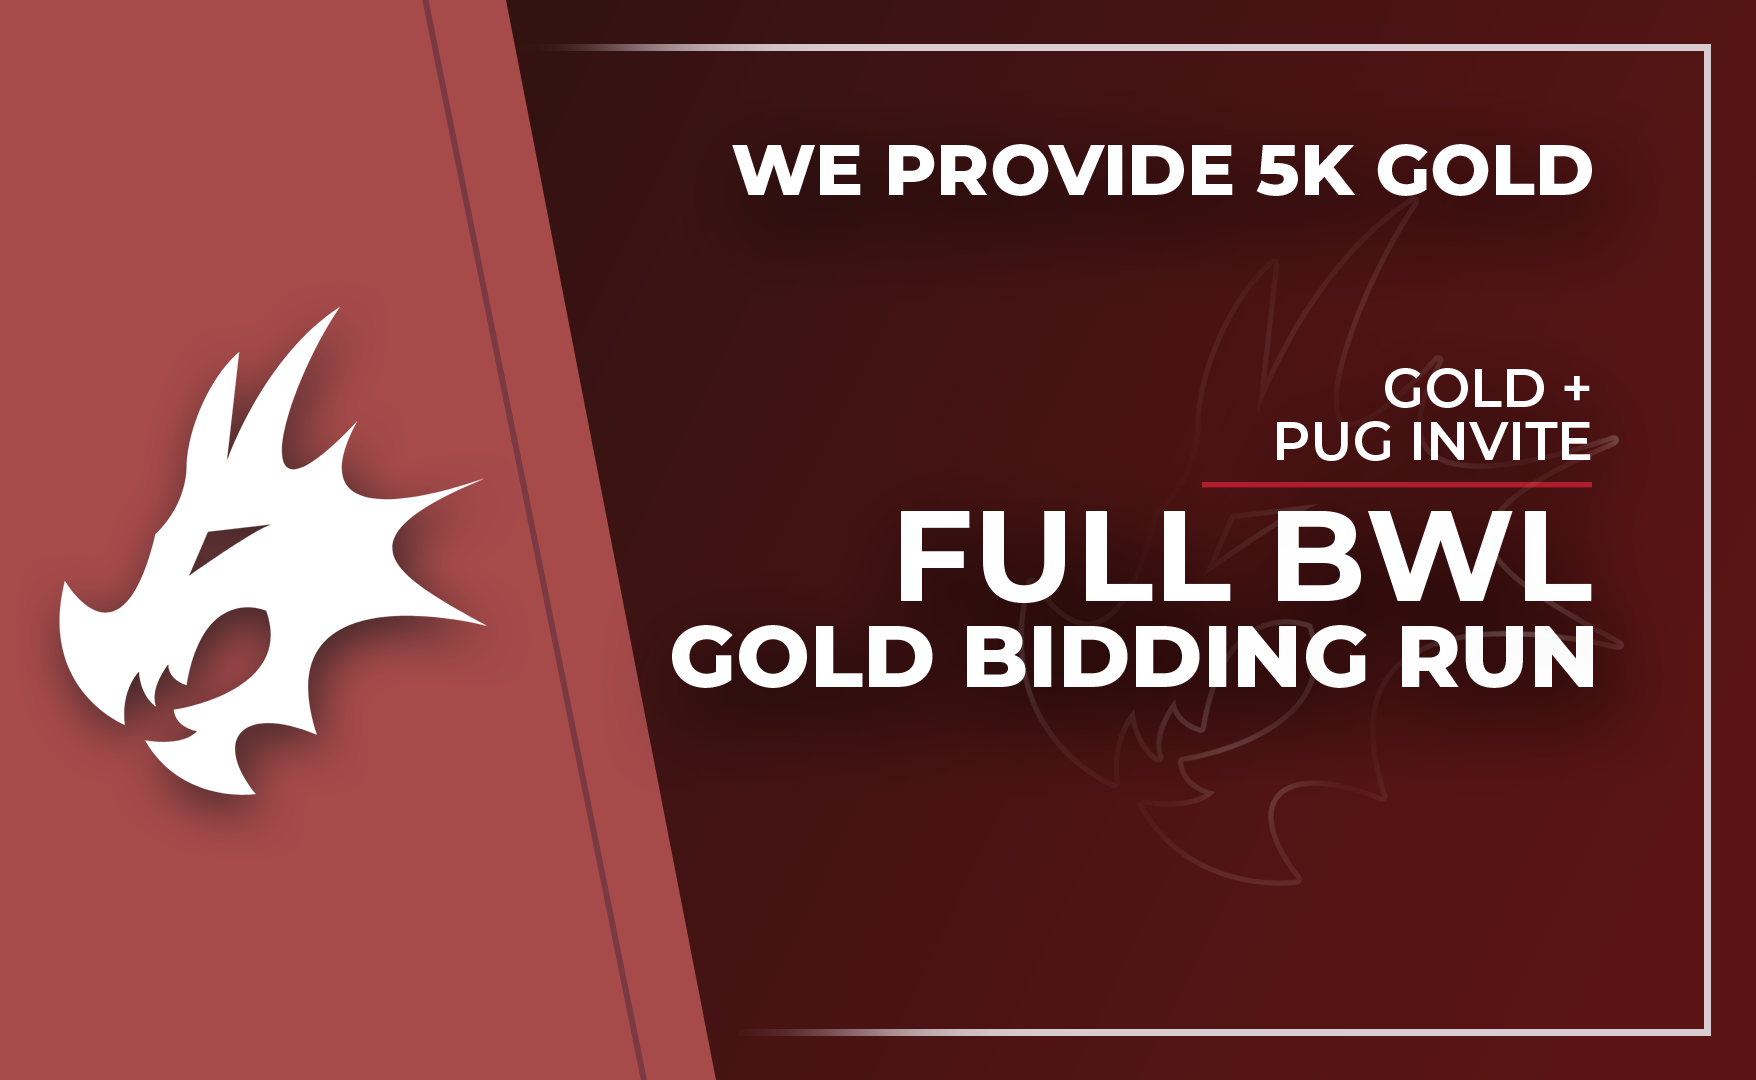 BWL Gold Bid Run - 5000 Gold